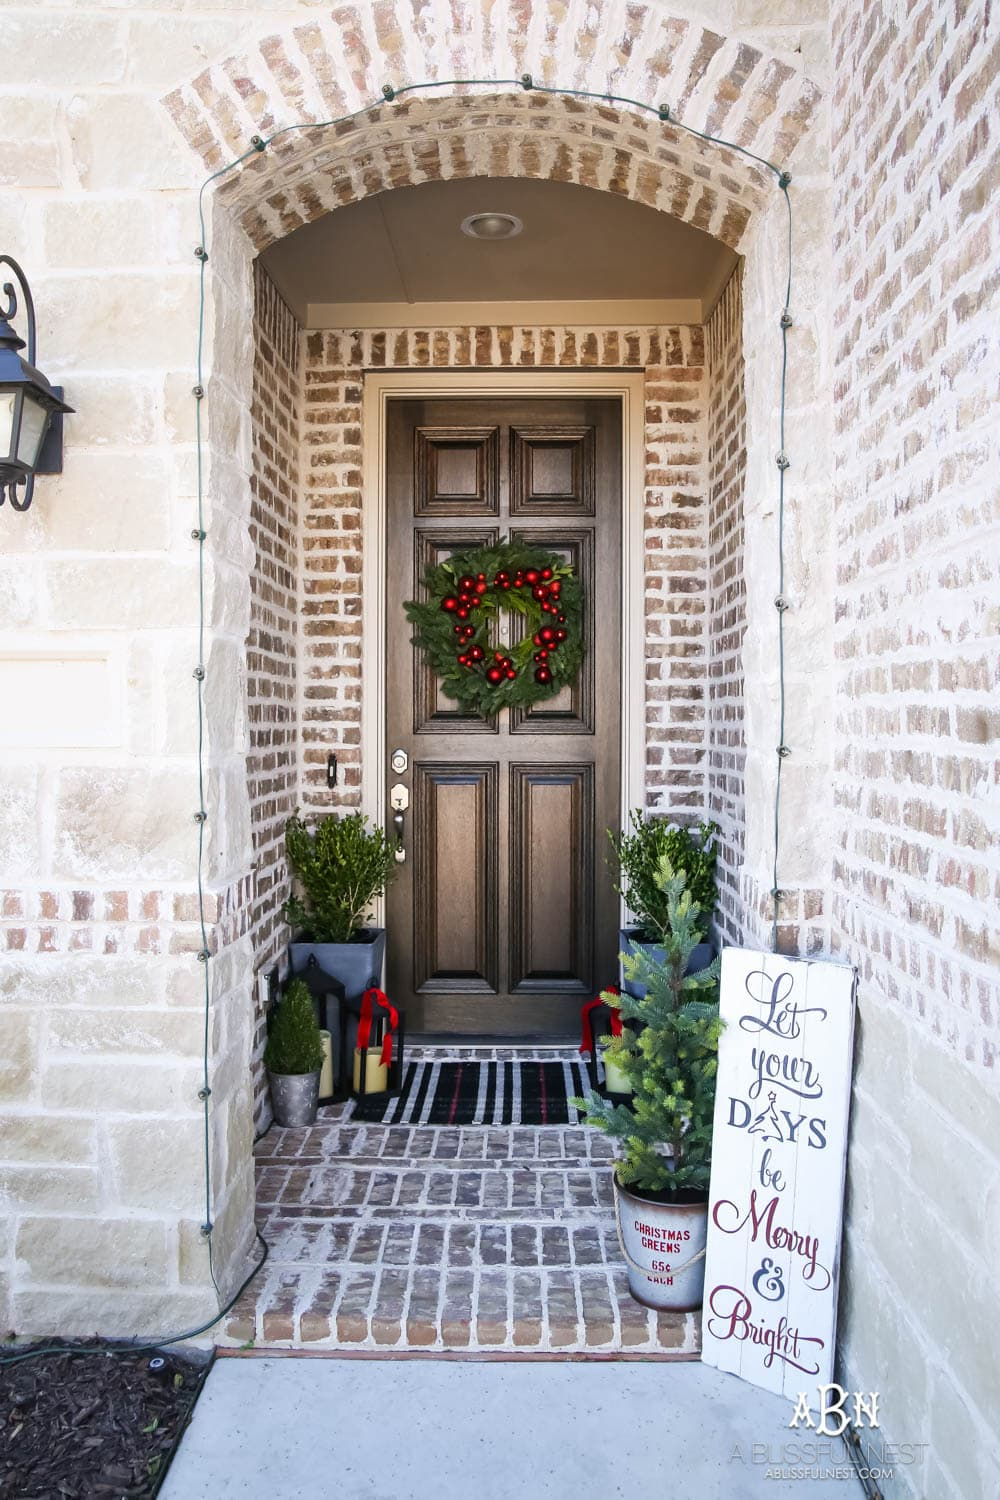 Classic Christmas front porch with red, white and black details. Festive plaid door mat and simple black lanterns. Red Christmas balls on a beautiful Christmas wreath. #christmasporch #christmasfrontporch #christmasporchdecor #christmasporchideas #christmashometour